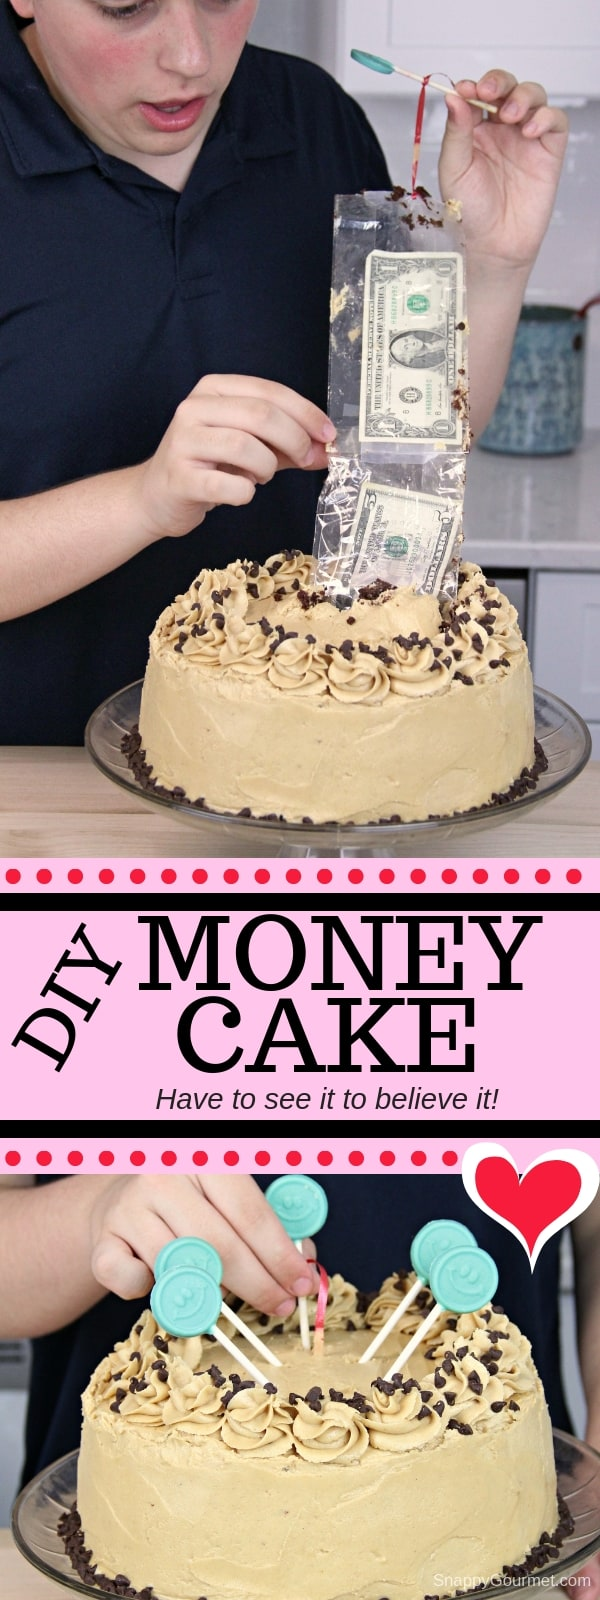 Money Cake collage